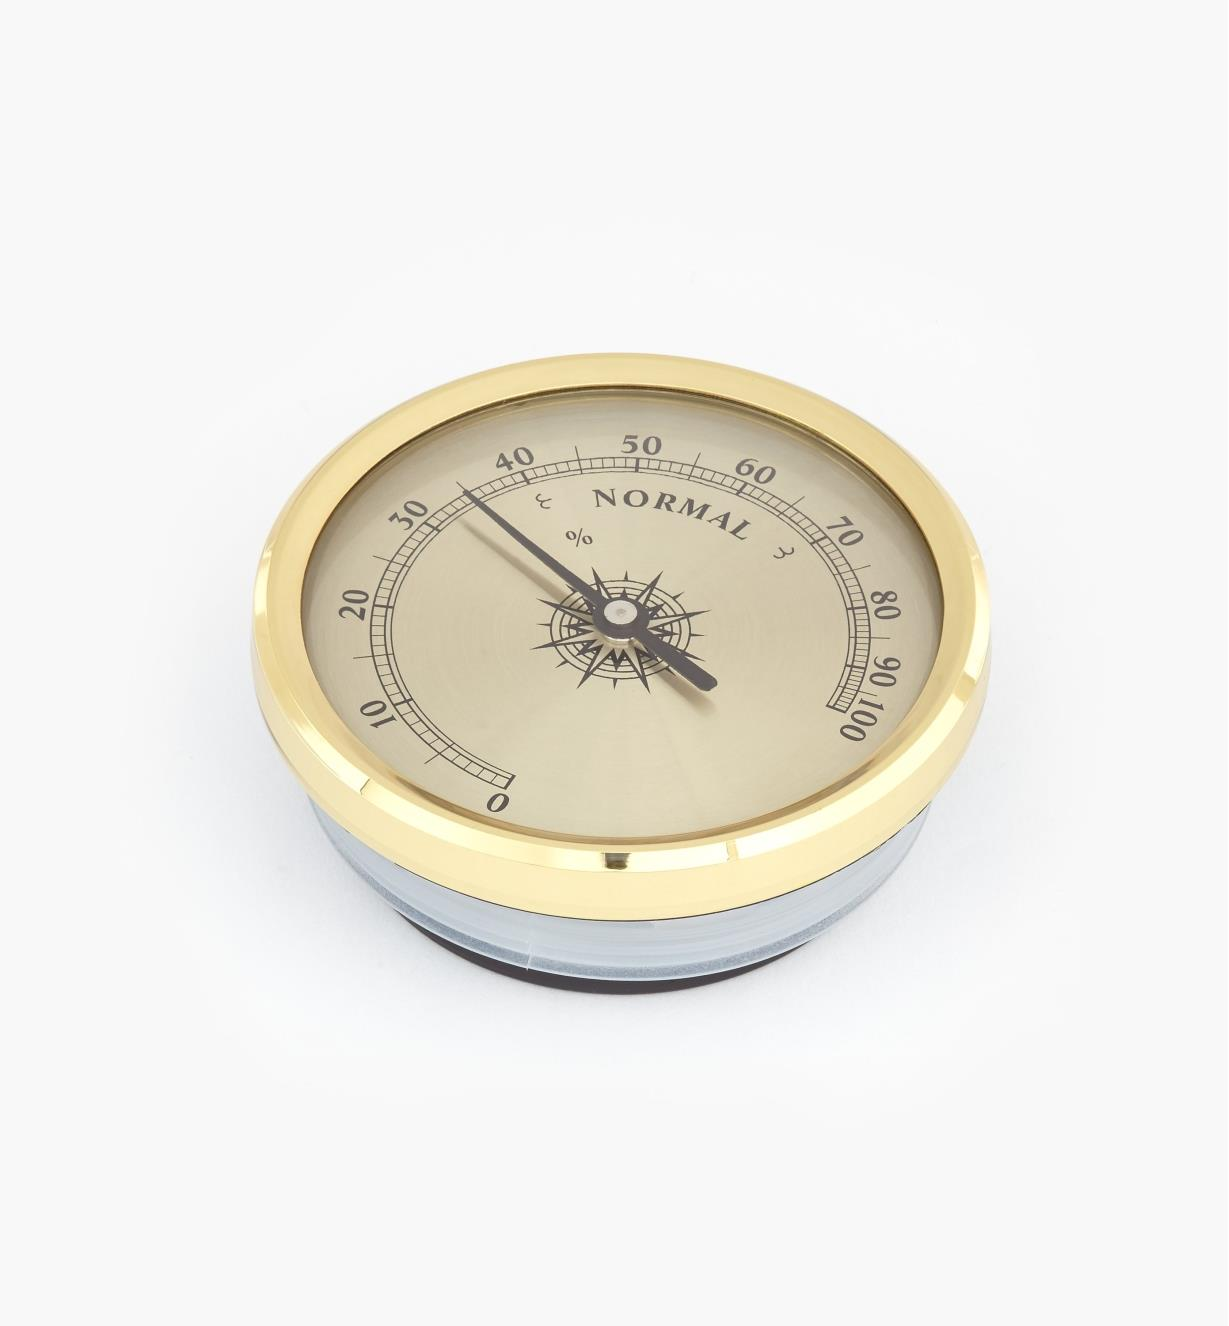 46K7022 - Brass Hygrometer, each